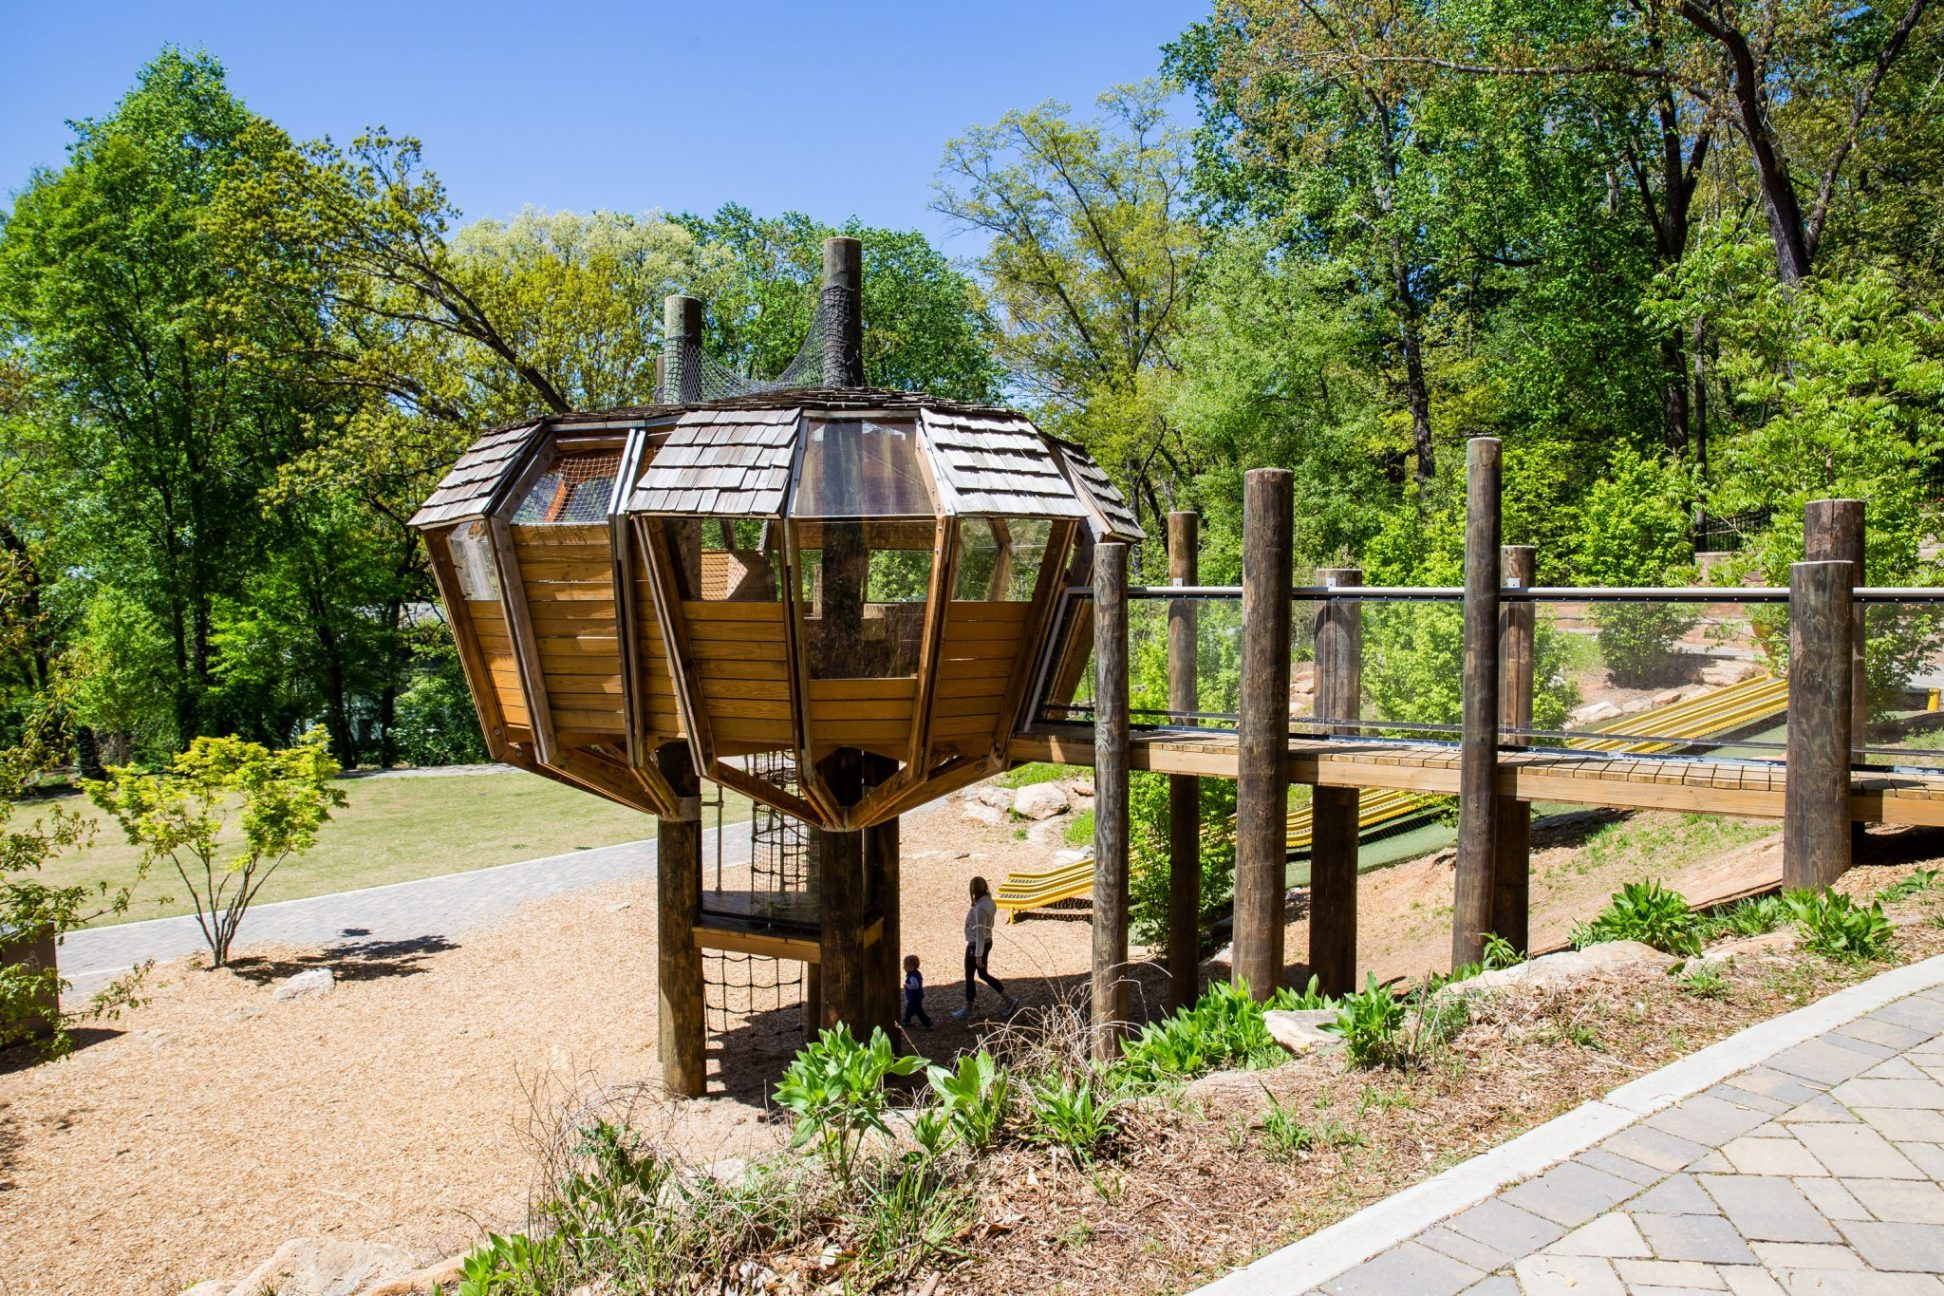 Play Chastain - ClientChastain Park ConservancyLocationAtlanta, GACompletion DateDecember 2015Brief Project DescriptionPlay Chastain entailed building out of new play structures and hardscapes in existing Chastain Park. The project included acres of hardscape and landscaping, a new treehouse, new play structures and a roller slide. Astra worked with Chastain Park Conservancy to create a world-class playground within the park.